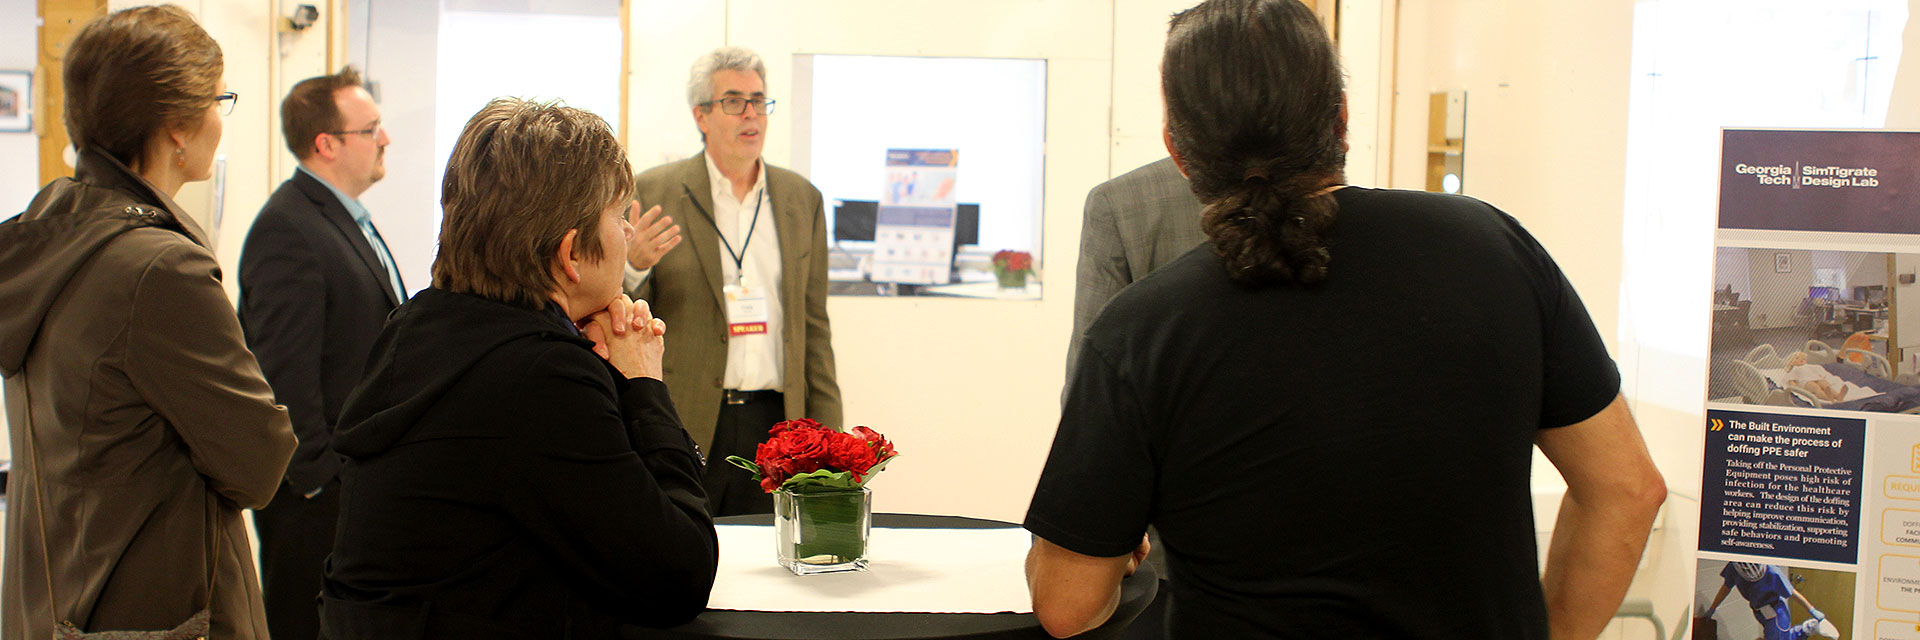 Craig Zimring talks with visitors at an event at SimTigrate.